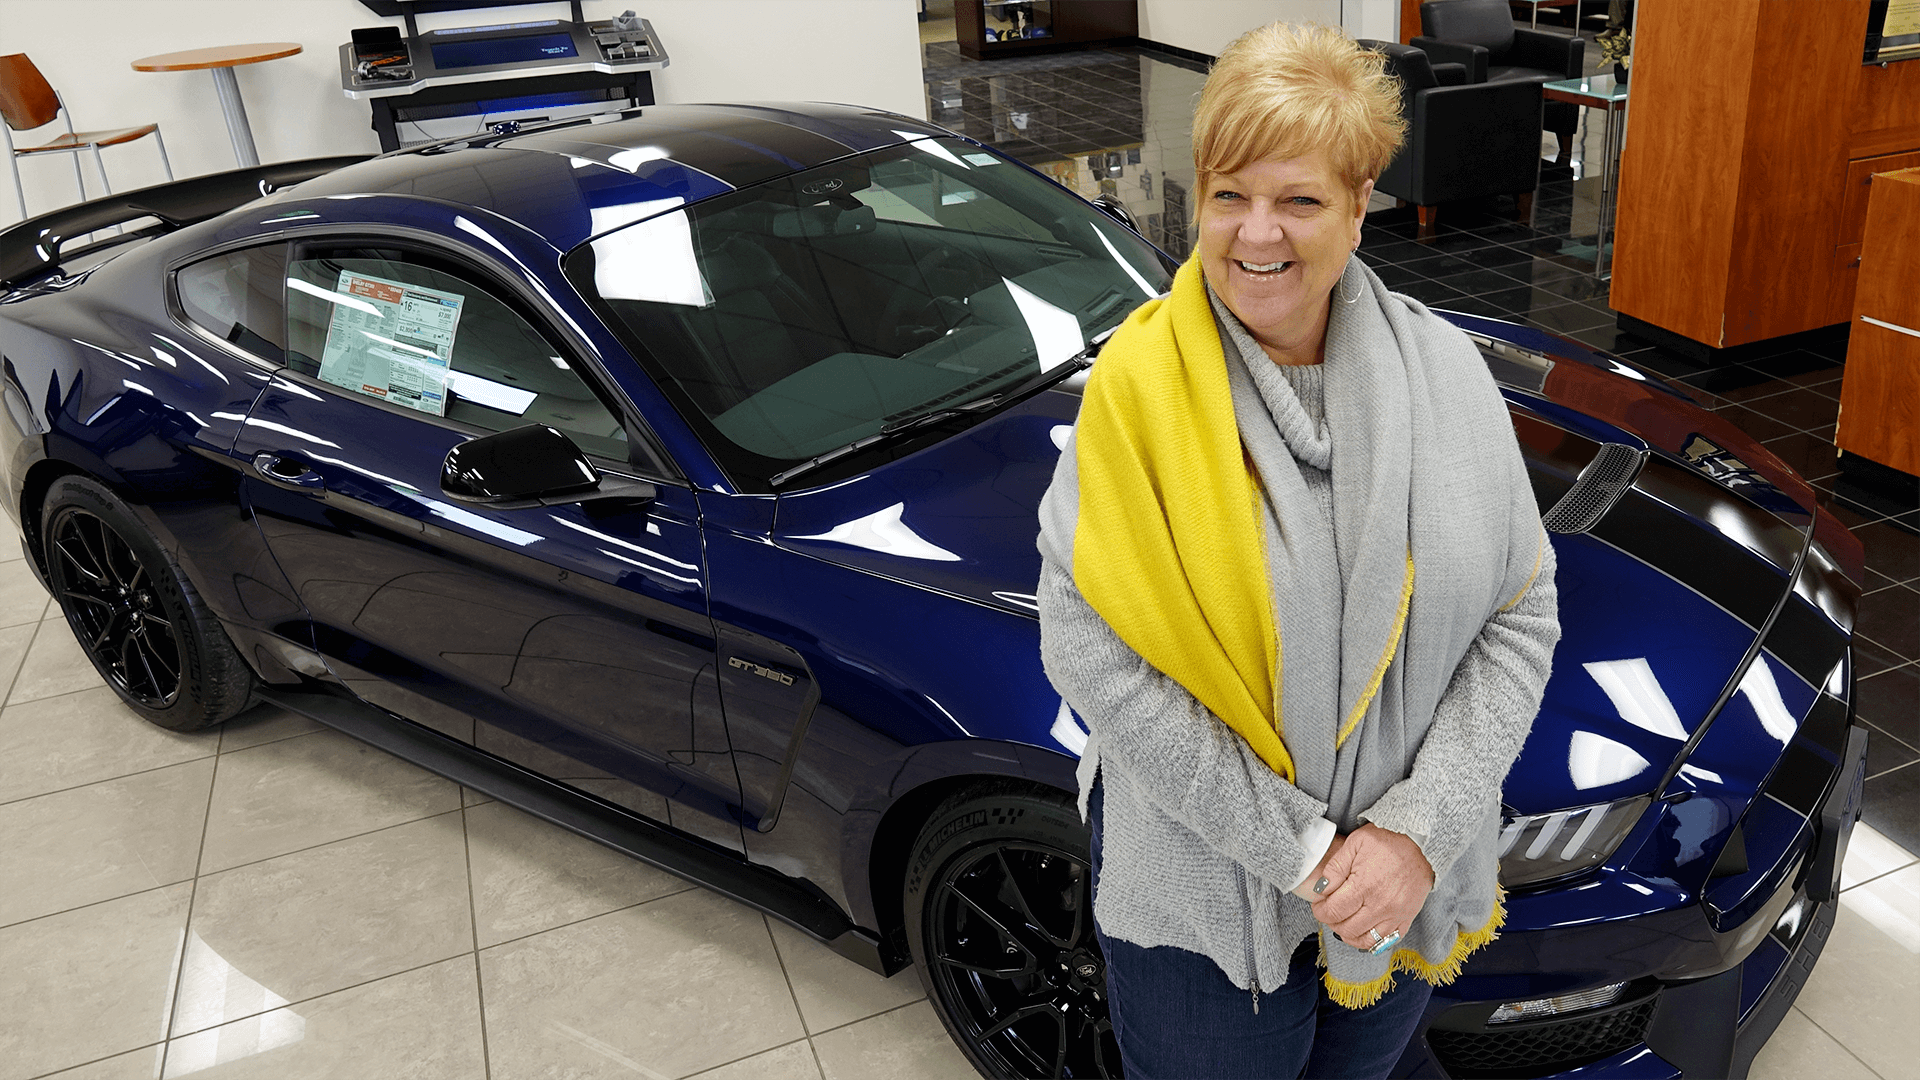 Fran Martin of Eide Chrysler and Eide Ford in Bismarck